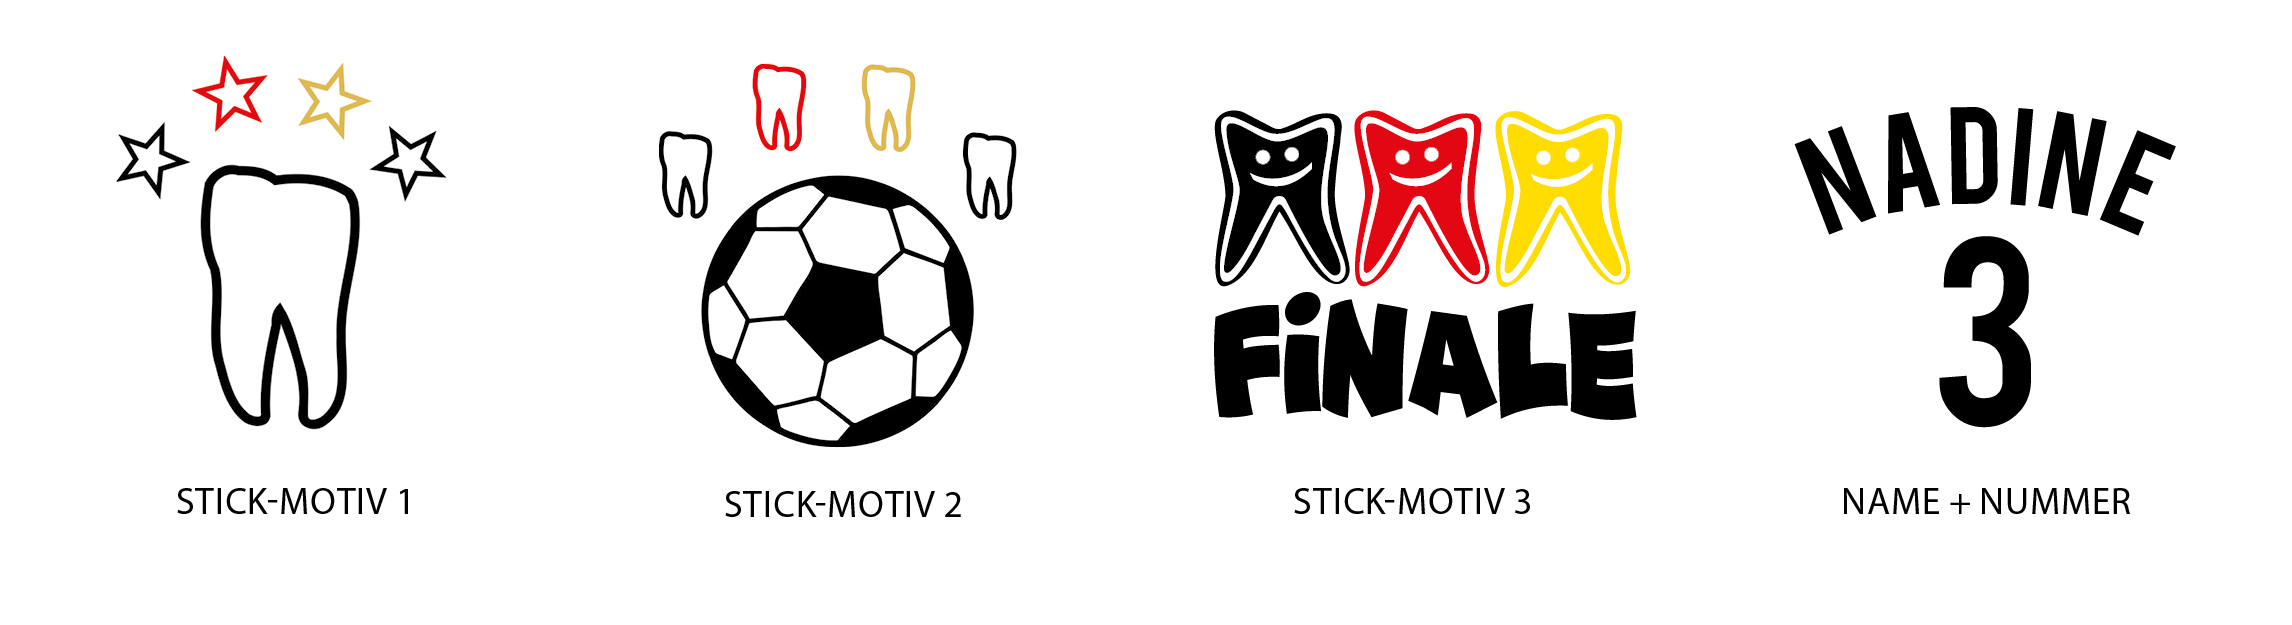 Stickmotive-WM2018_1